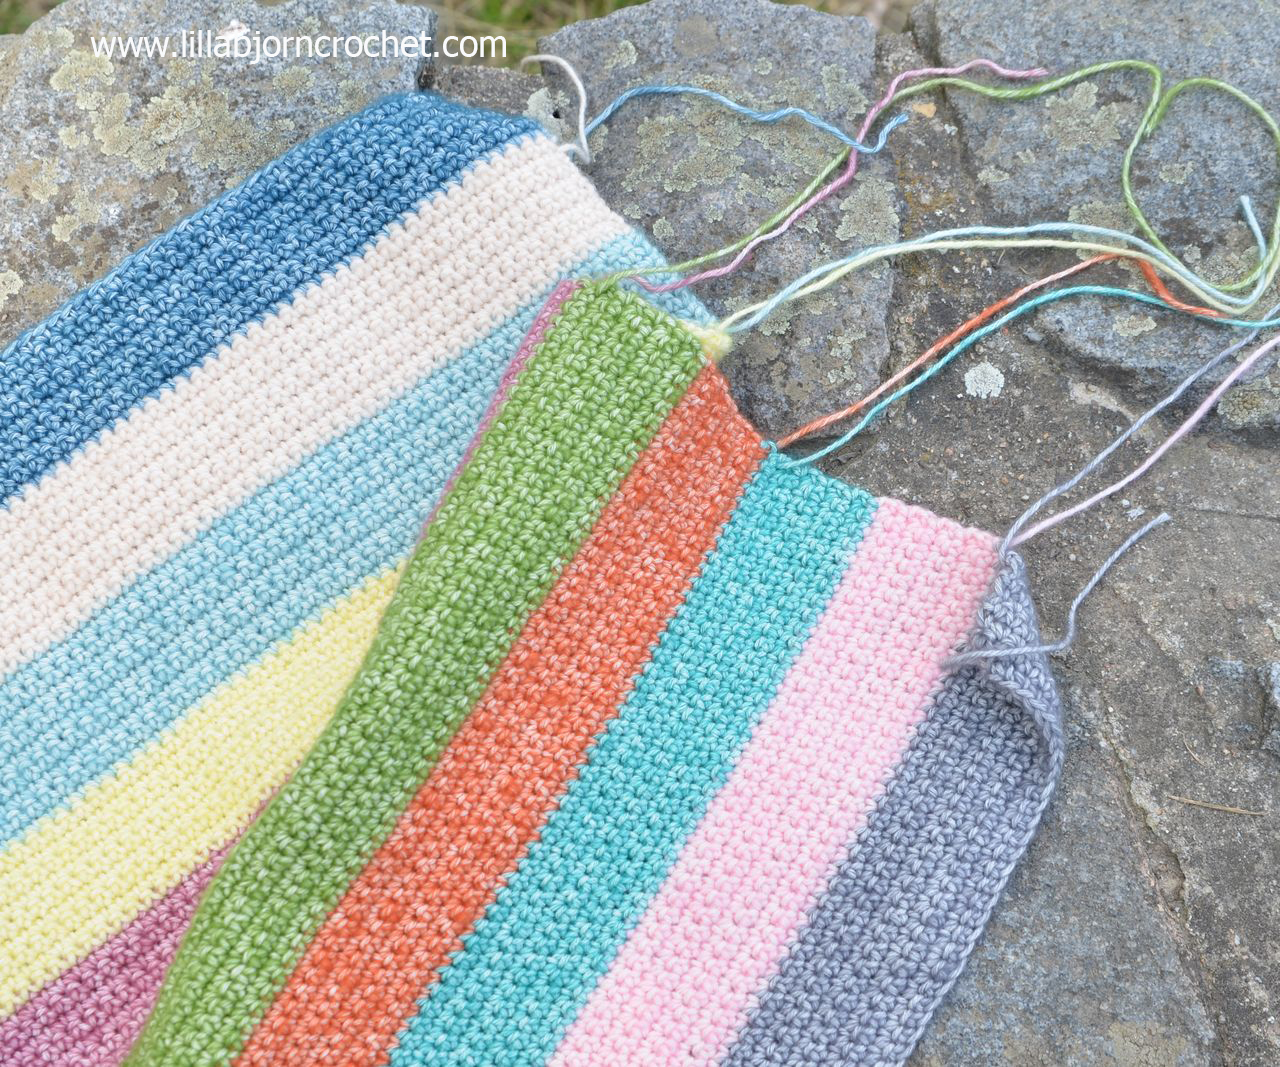 Striped pillow cover made with Stone Washed yarn by Scheepjes. Free crochet pattern by Lilla Bjorn Crochet